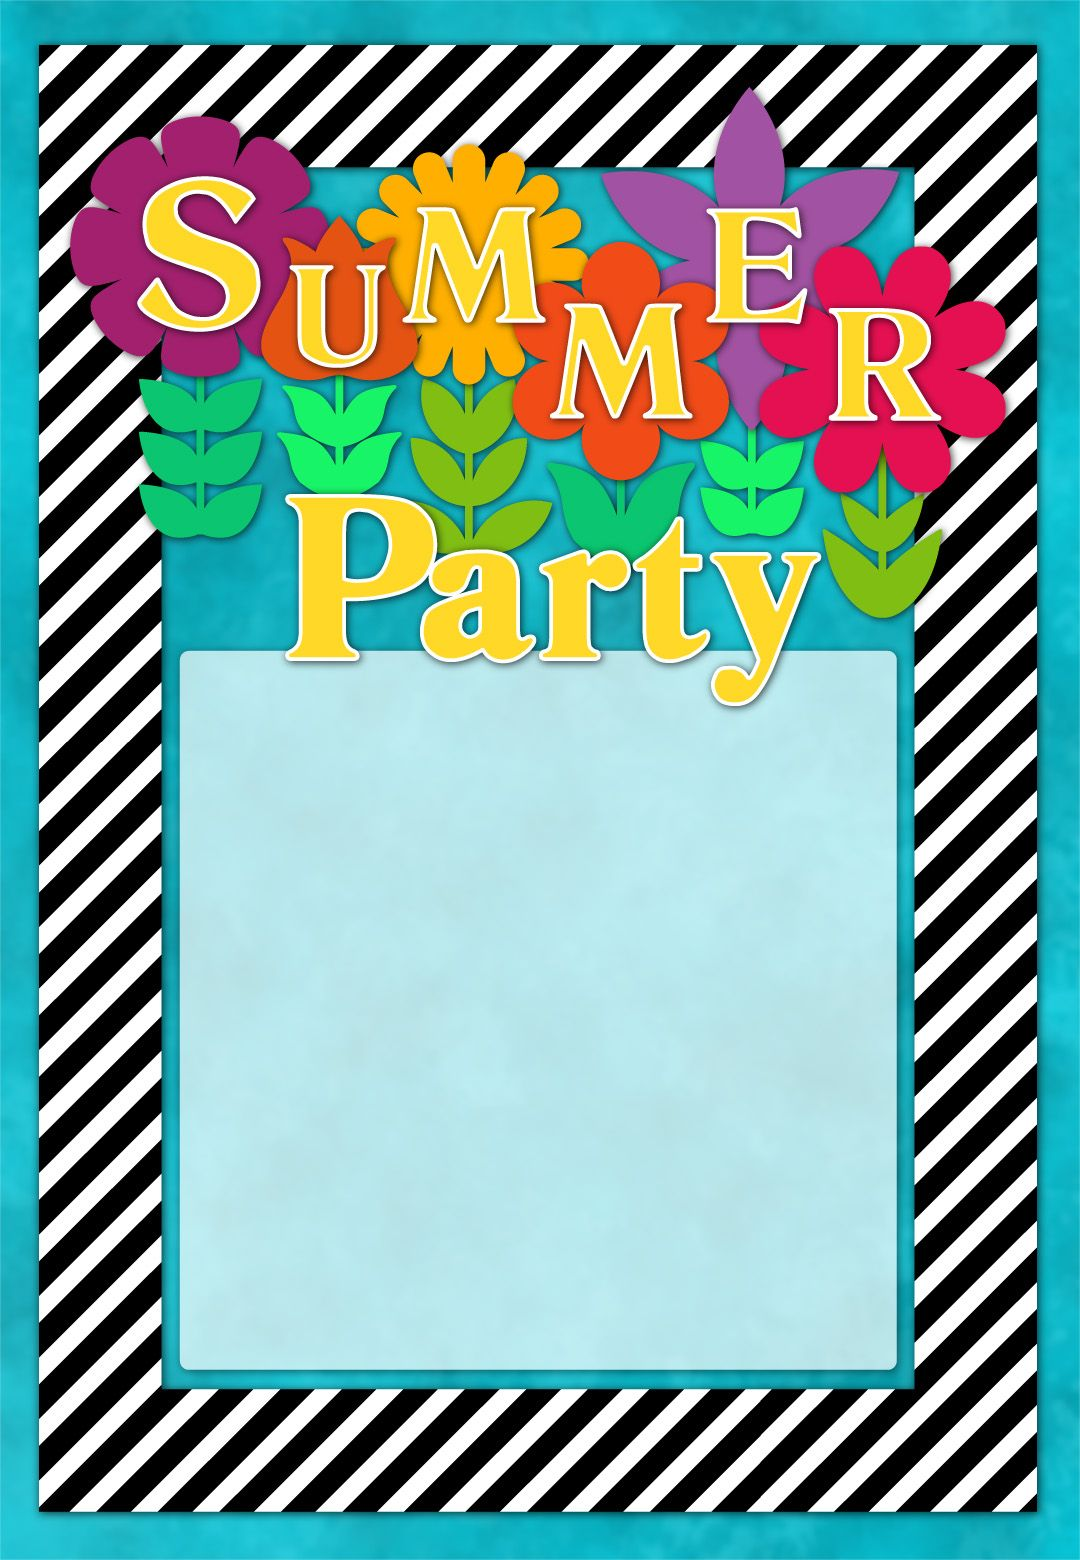 Summer Party Invitation Free Printable Cards And Invitations For Every Occasion Summer Party Invitations Party Invite Template Pool Party Invitations